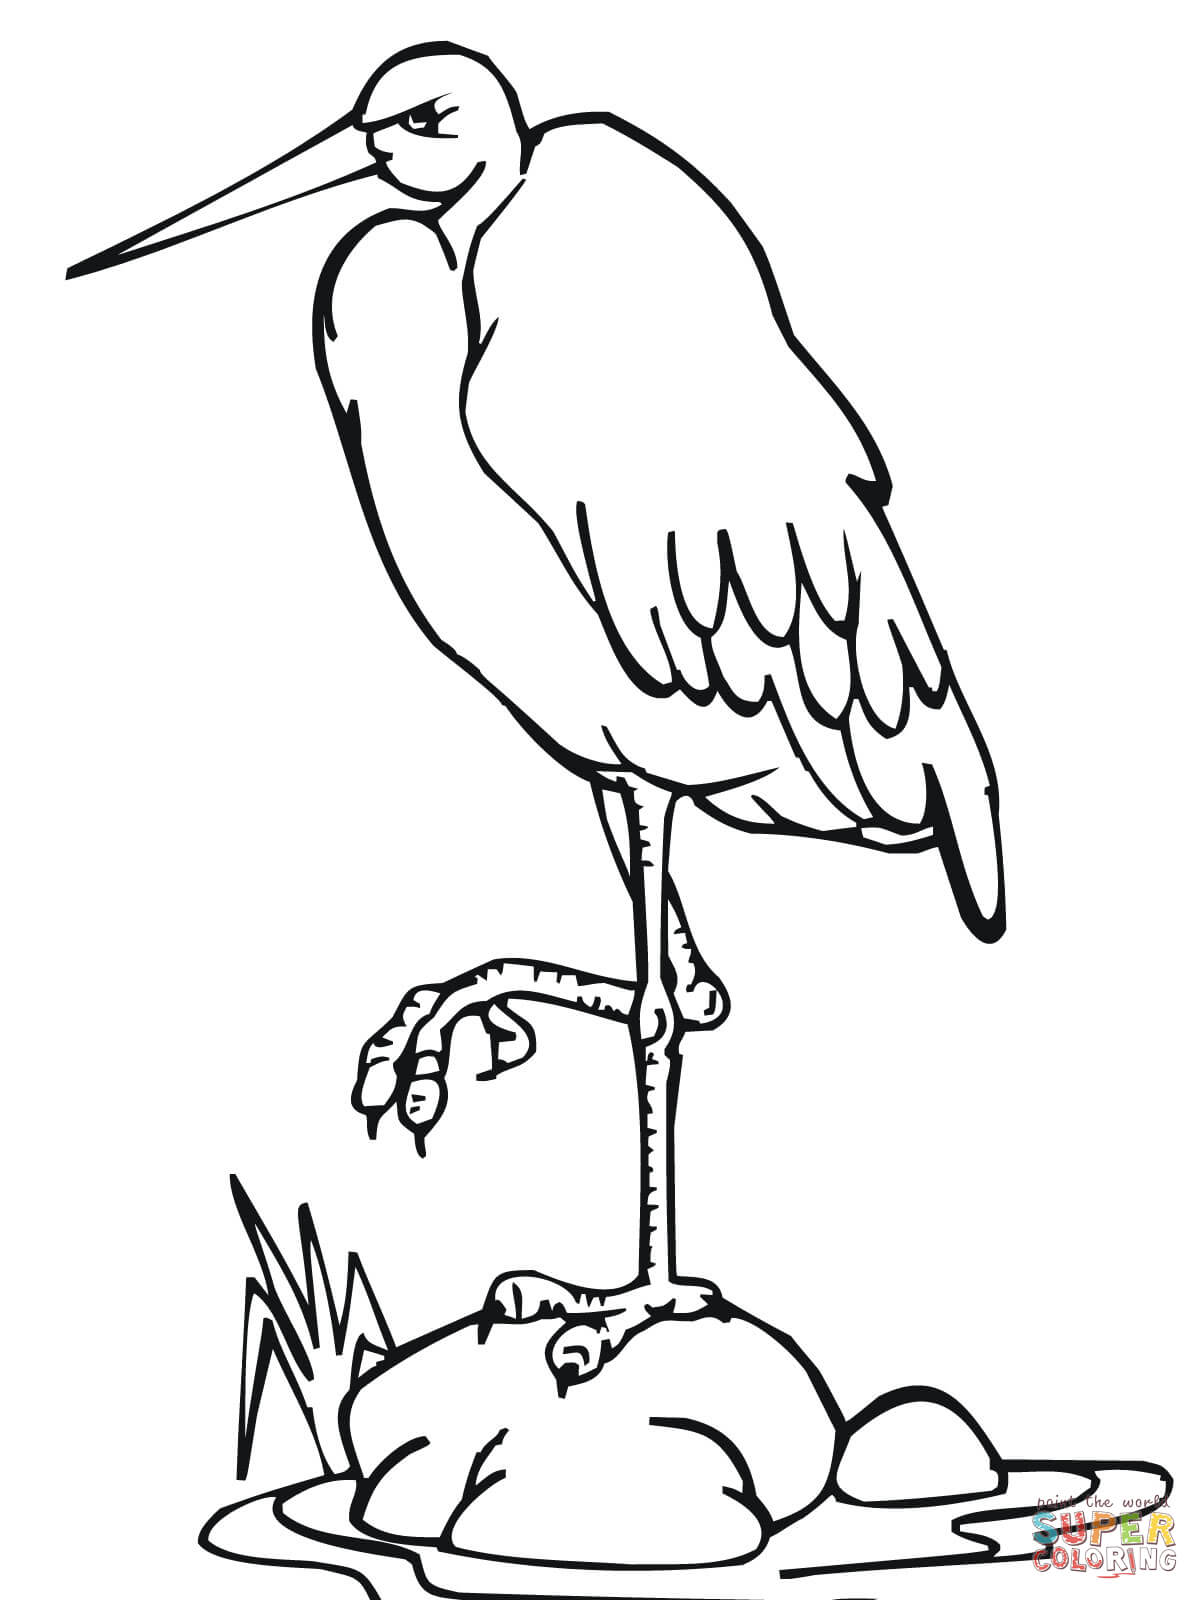 Stork Standing On One Leg Coloring Page